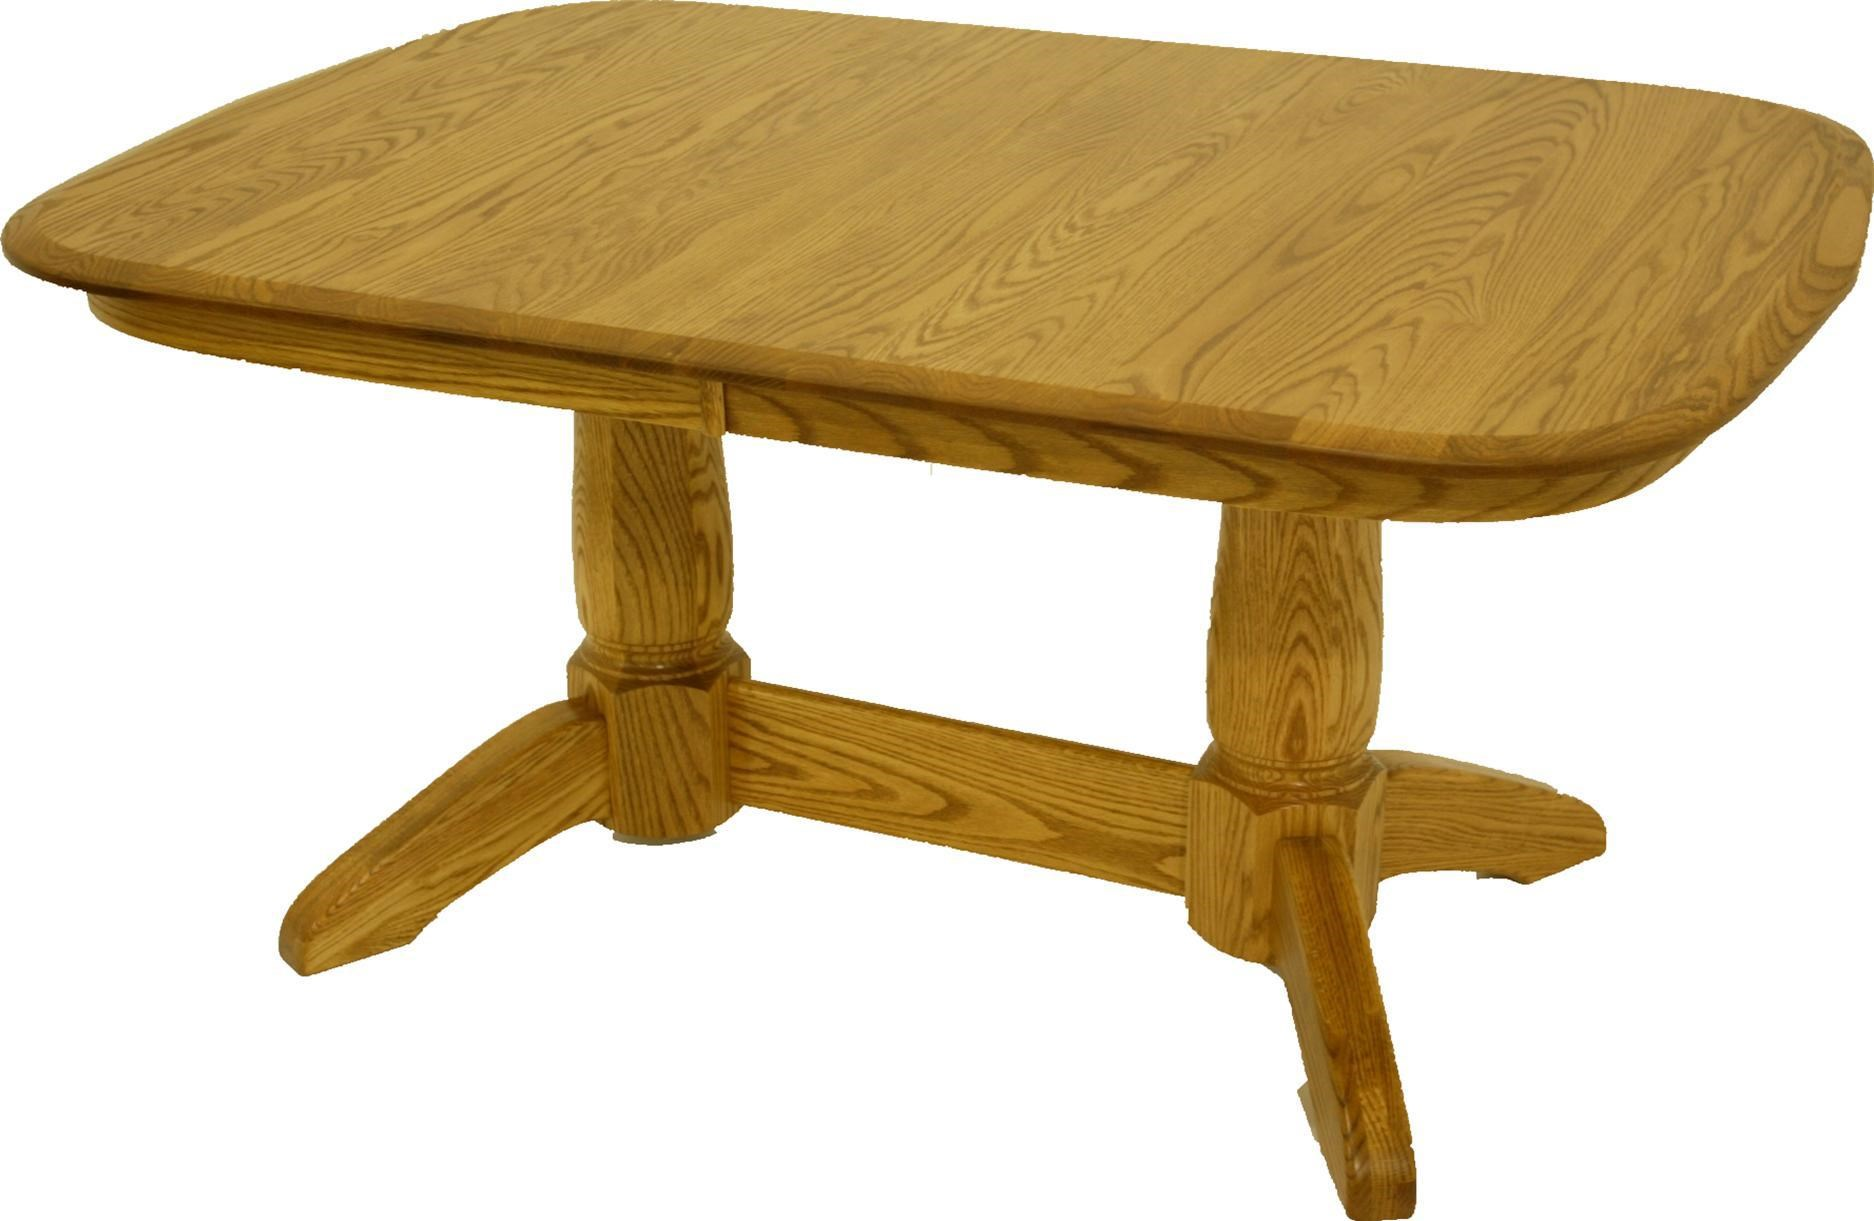 L.J. Gascho Furniture Solid Wood Dining SetsHeritage Dining Table ...